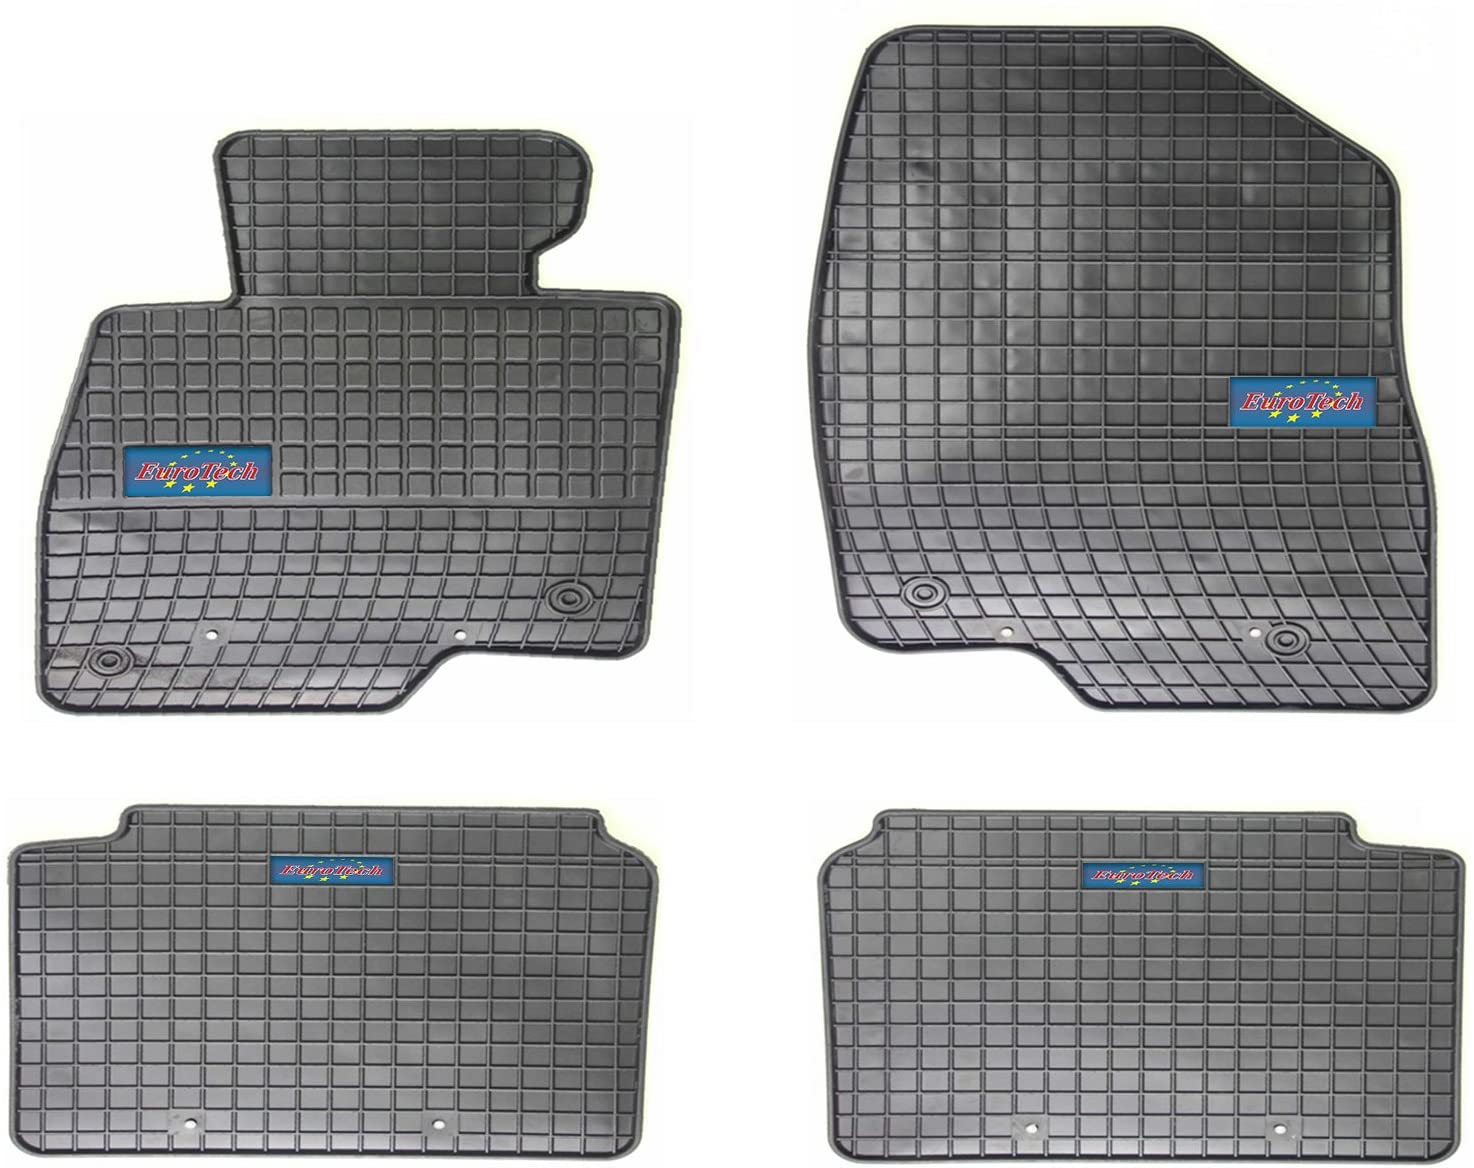 EuroTech Rubber Car Mats For Mazda 6 III 2013 - Current - No Smell - Custom set MADE IN EUROPE - Laser Measured, Waterproof, All Weather. SUV, Trucks, Cars, Auto